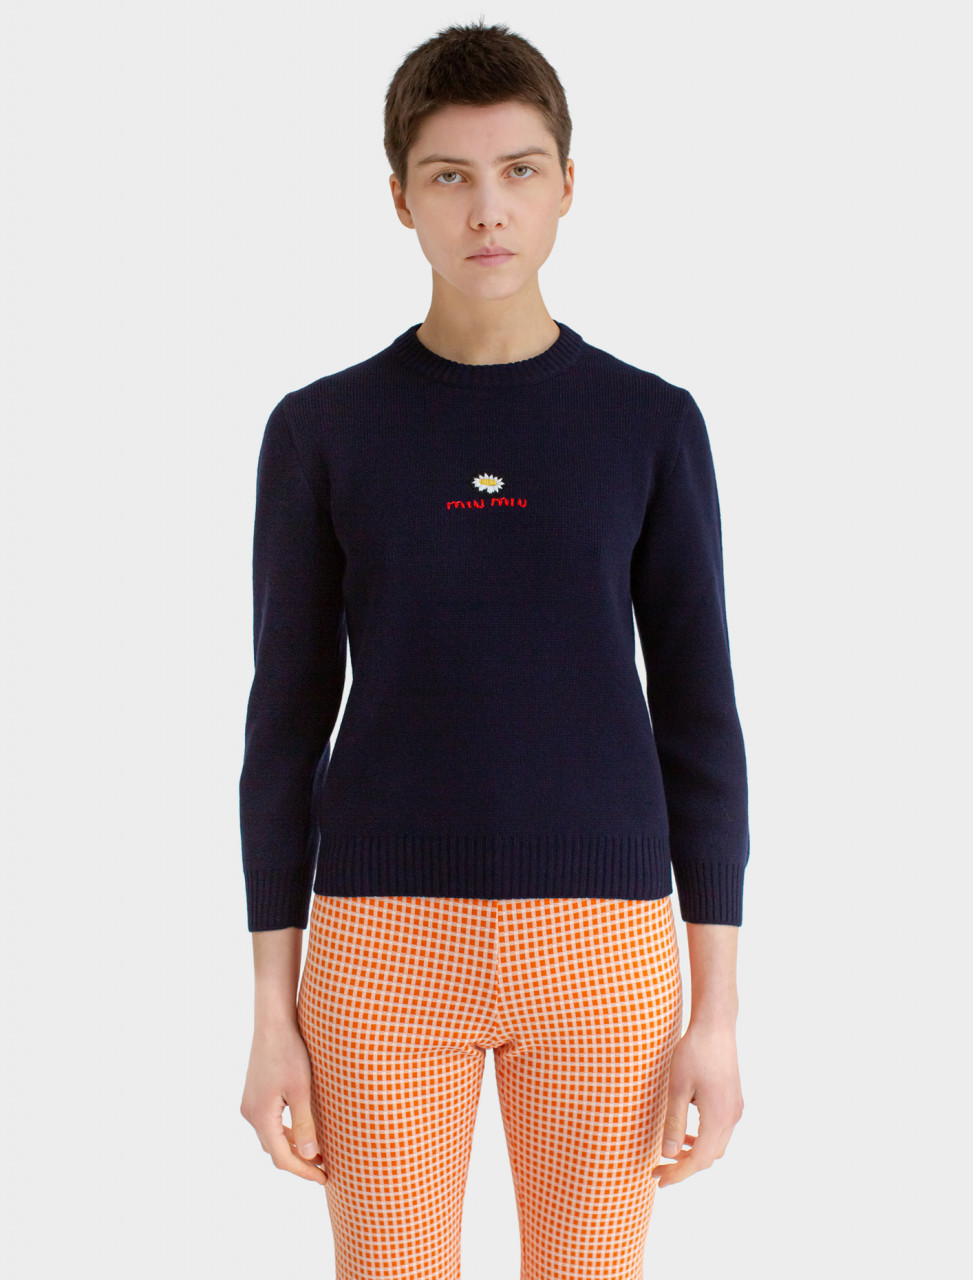 Lambswool Pullover with Embroidered Daisy Motif